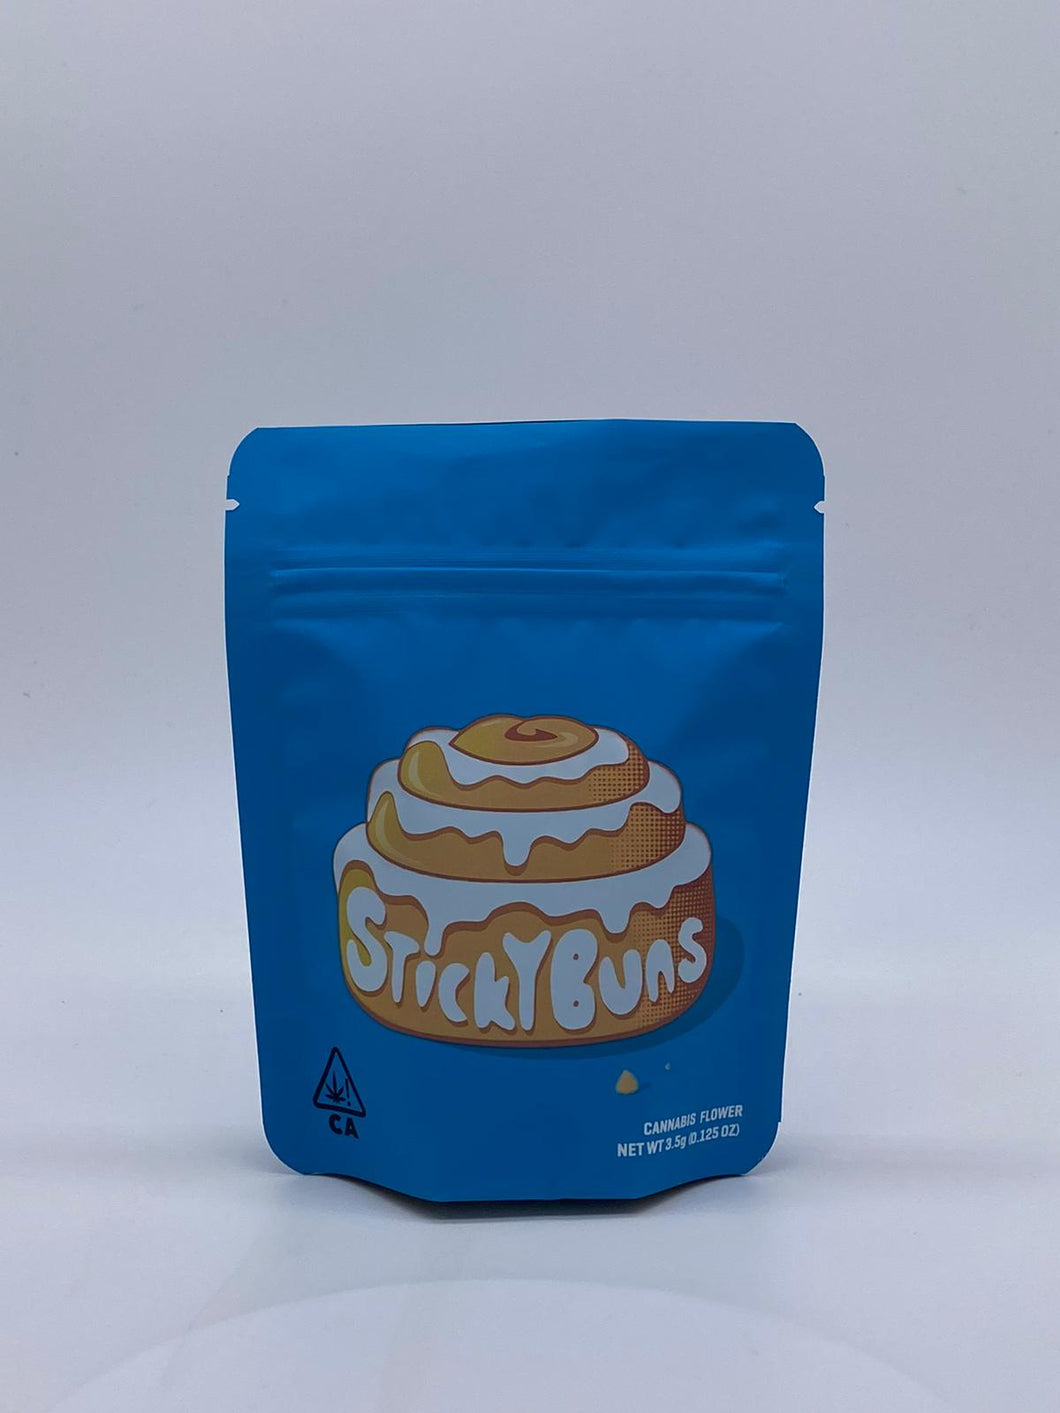 SF Cookies Bag – Sticky Buns 3.5 Grams Bag